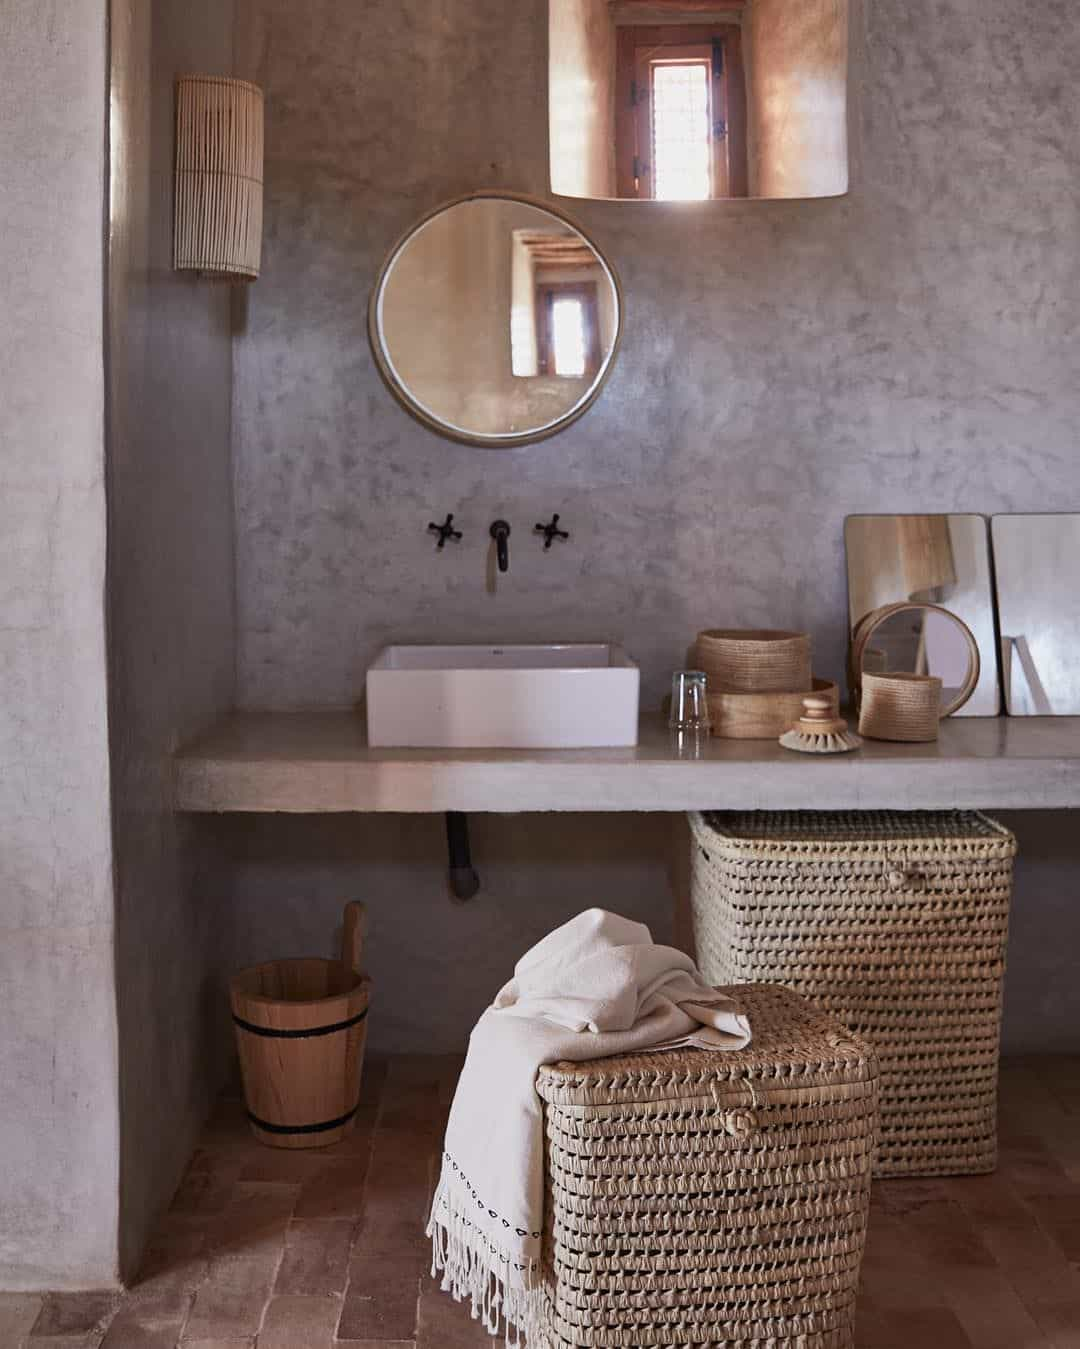 small baskets with woven baskets Small Bathroom Design Ideas That Enhance The Size